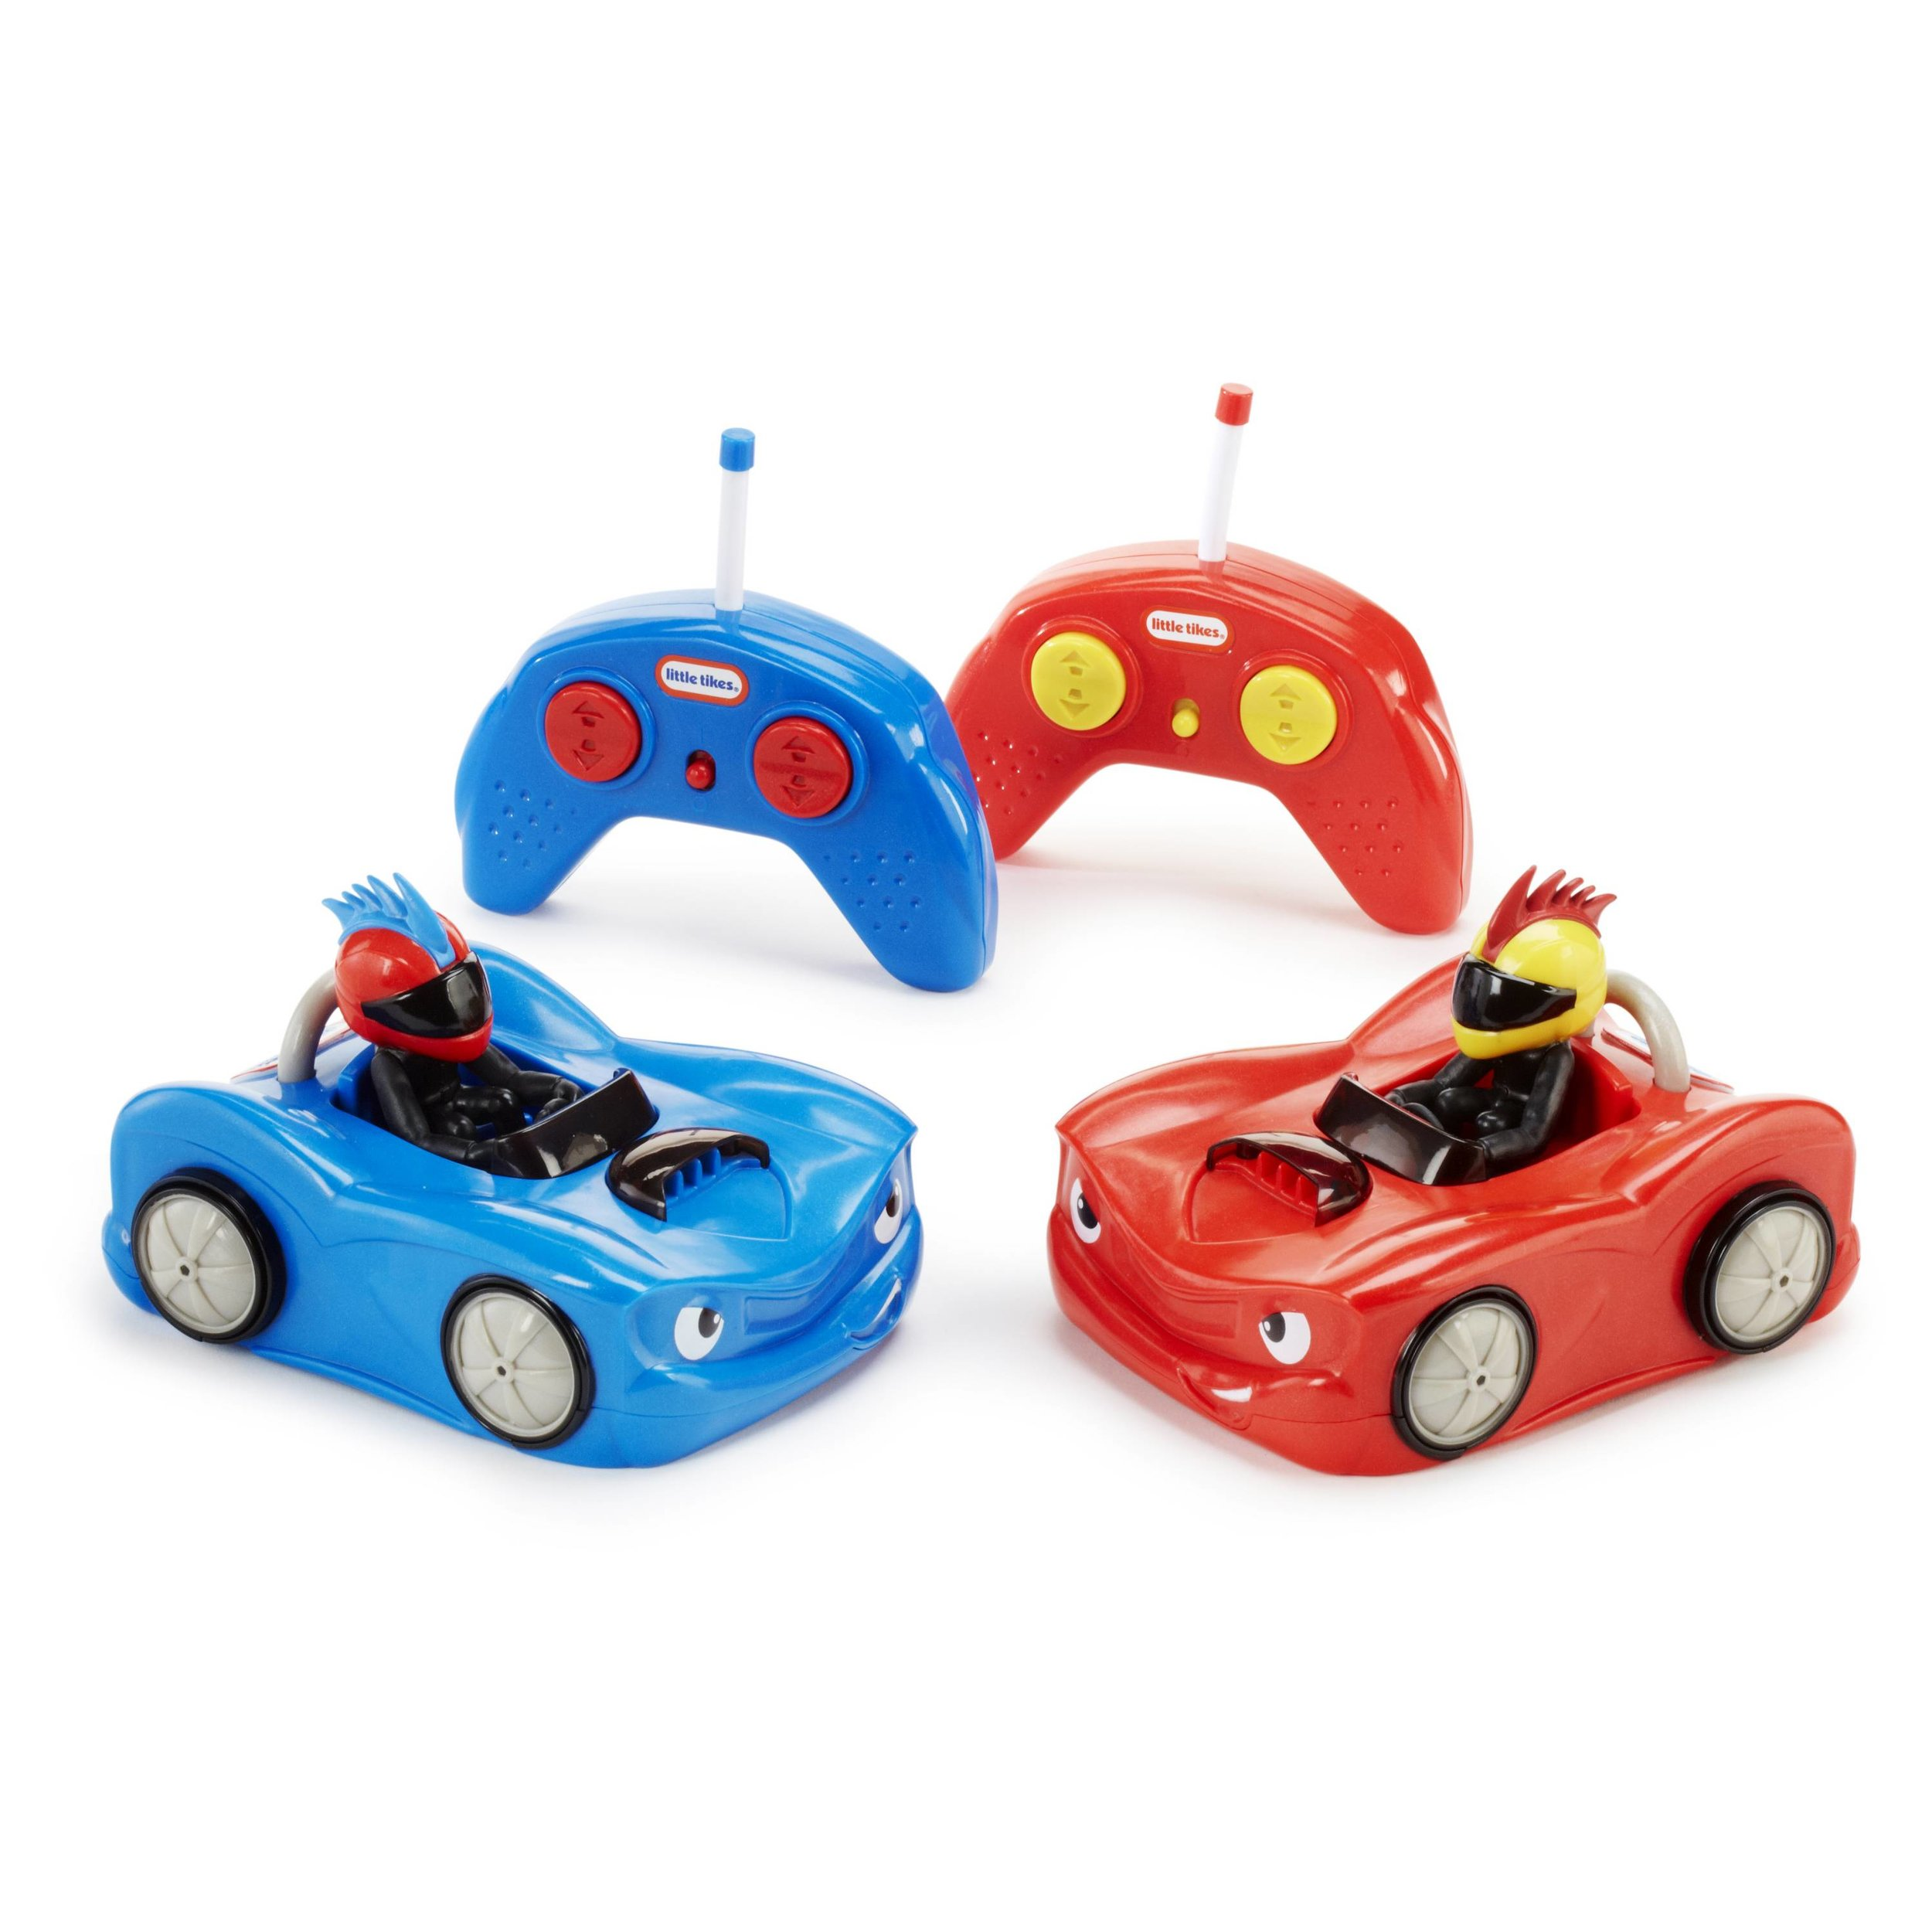 BUMPER CARS... - because they would love steering these cars every which way